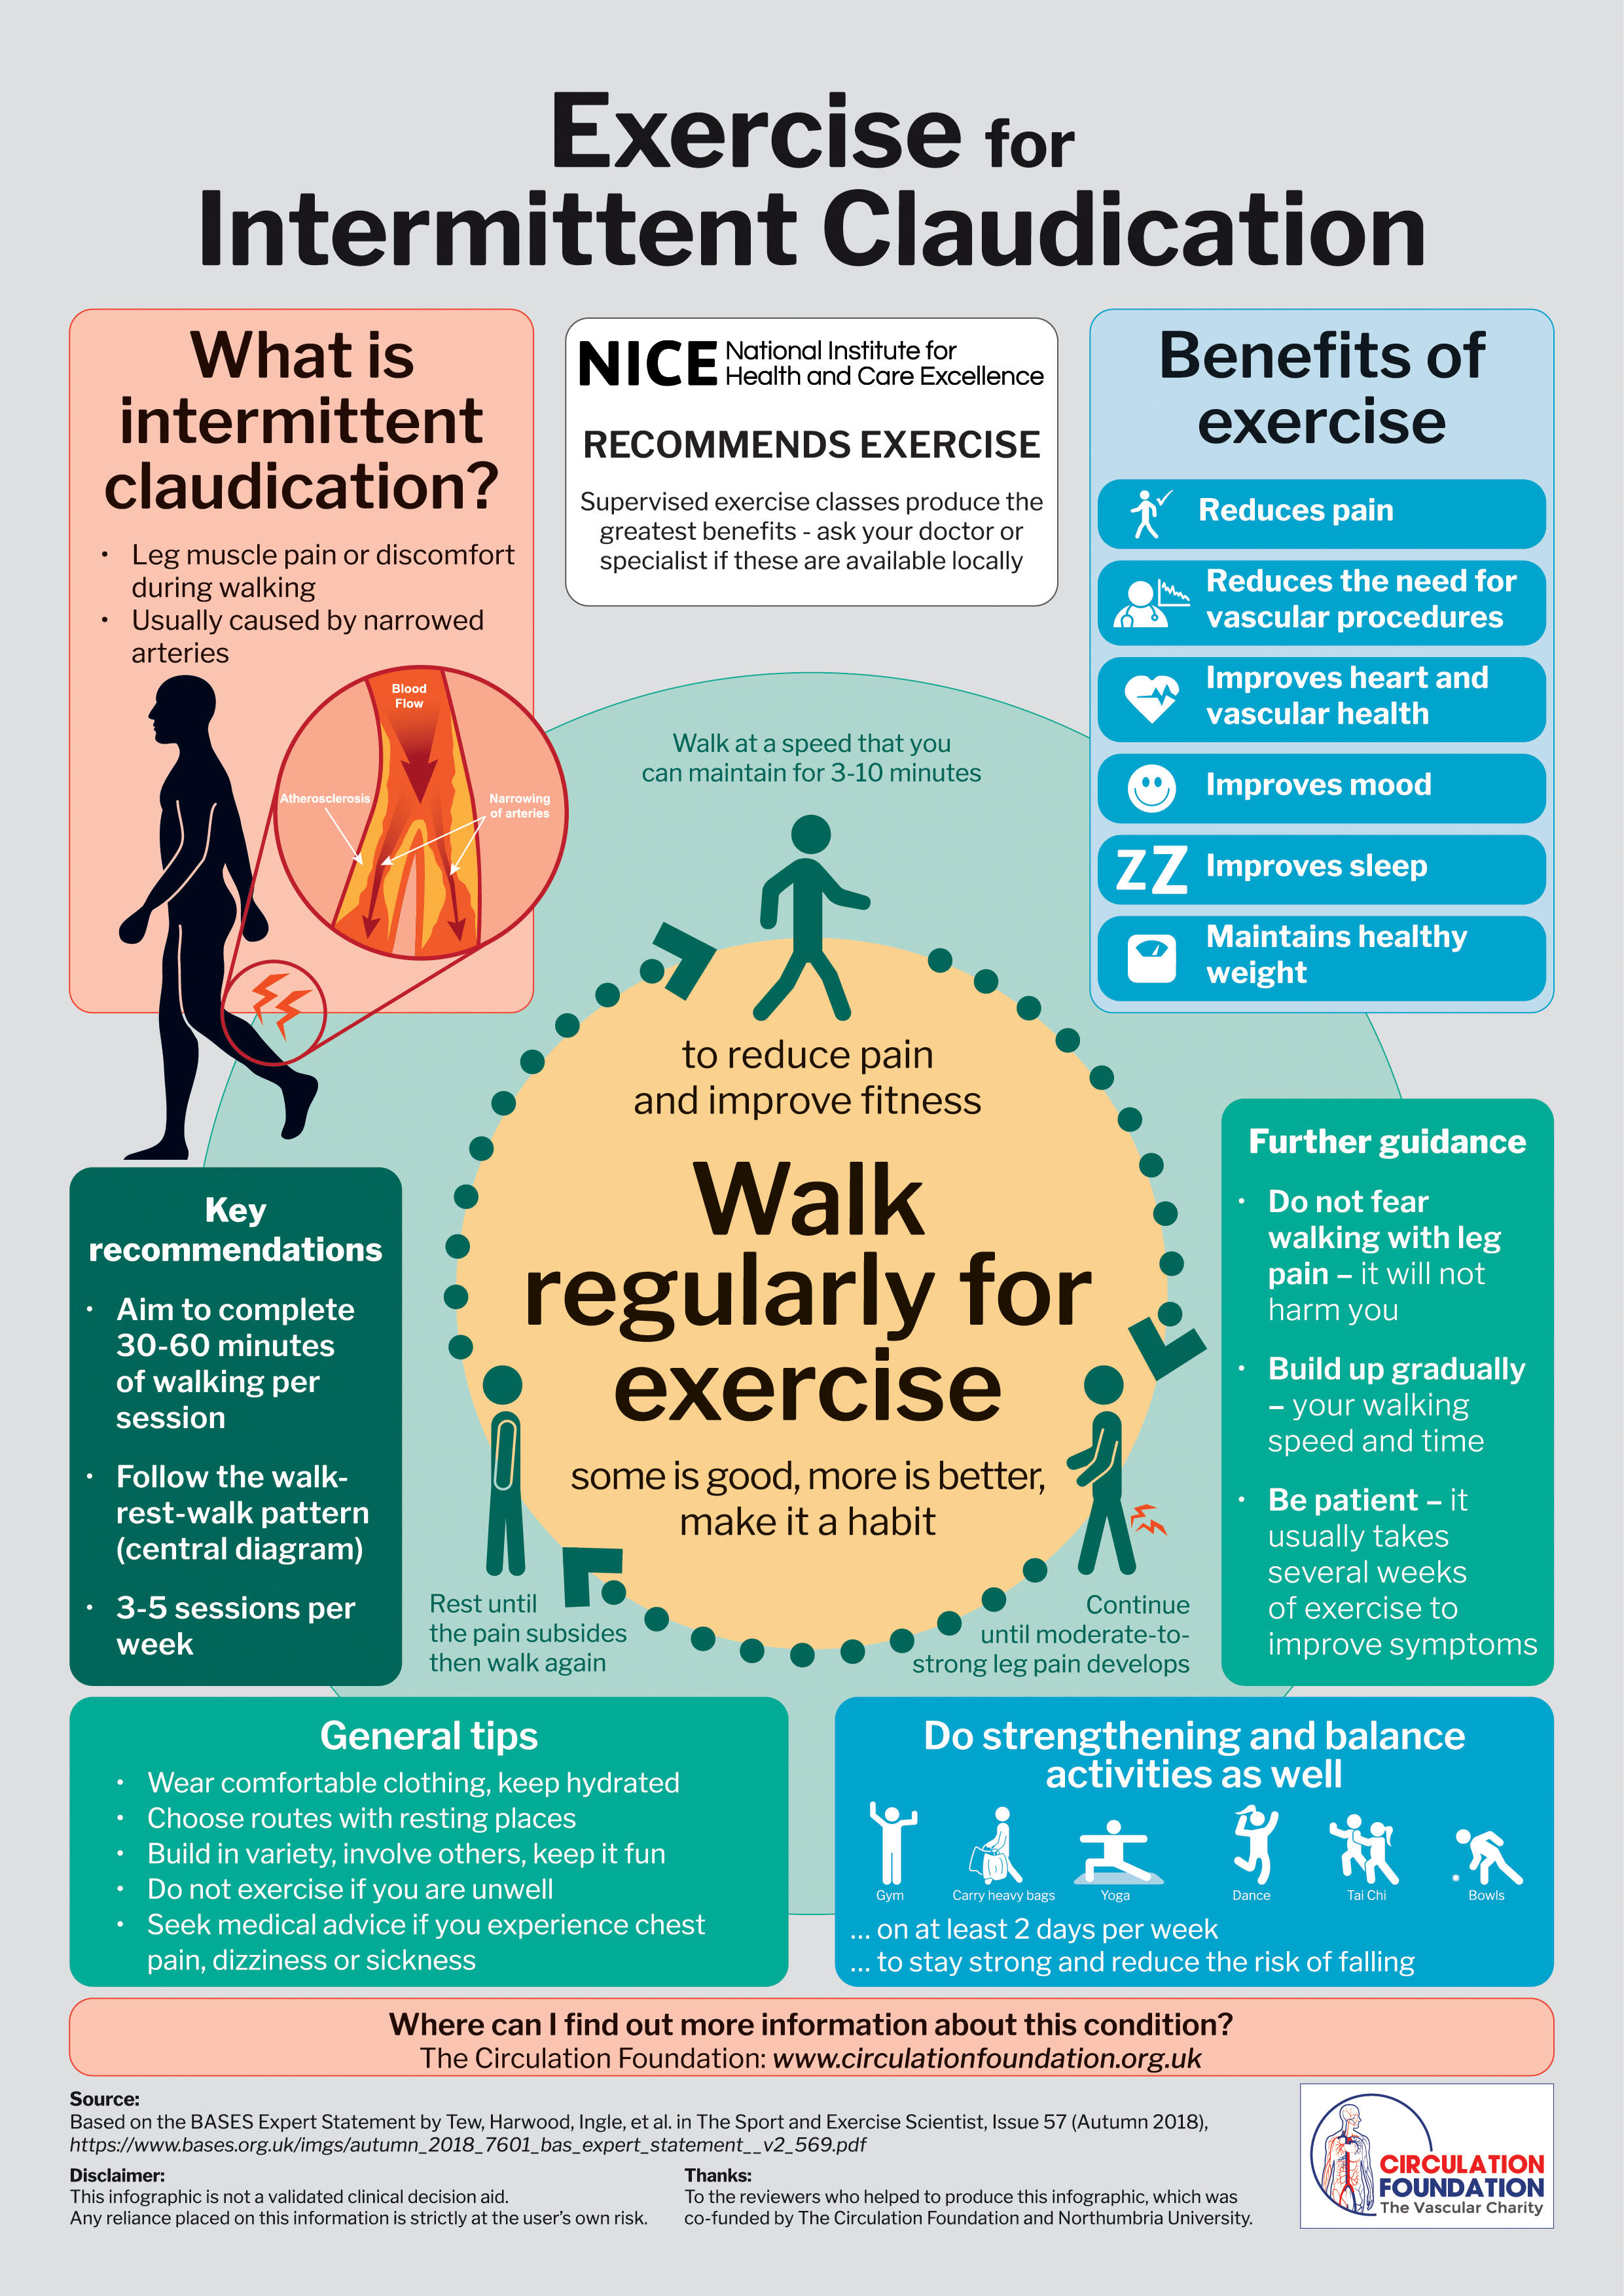 Exercise For Intermittent Claudication Leg Muscle Pain Infographic Circulation Foundation UK